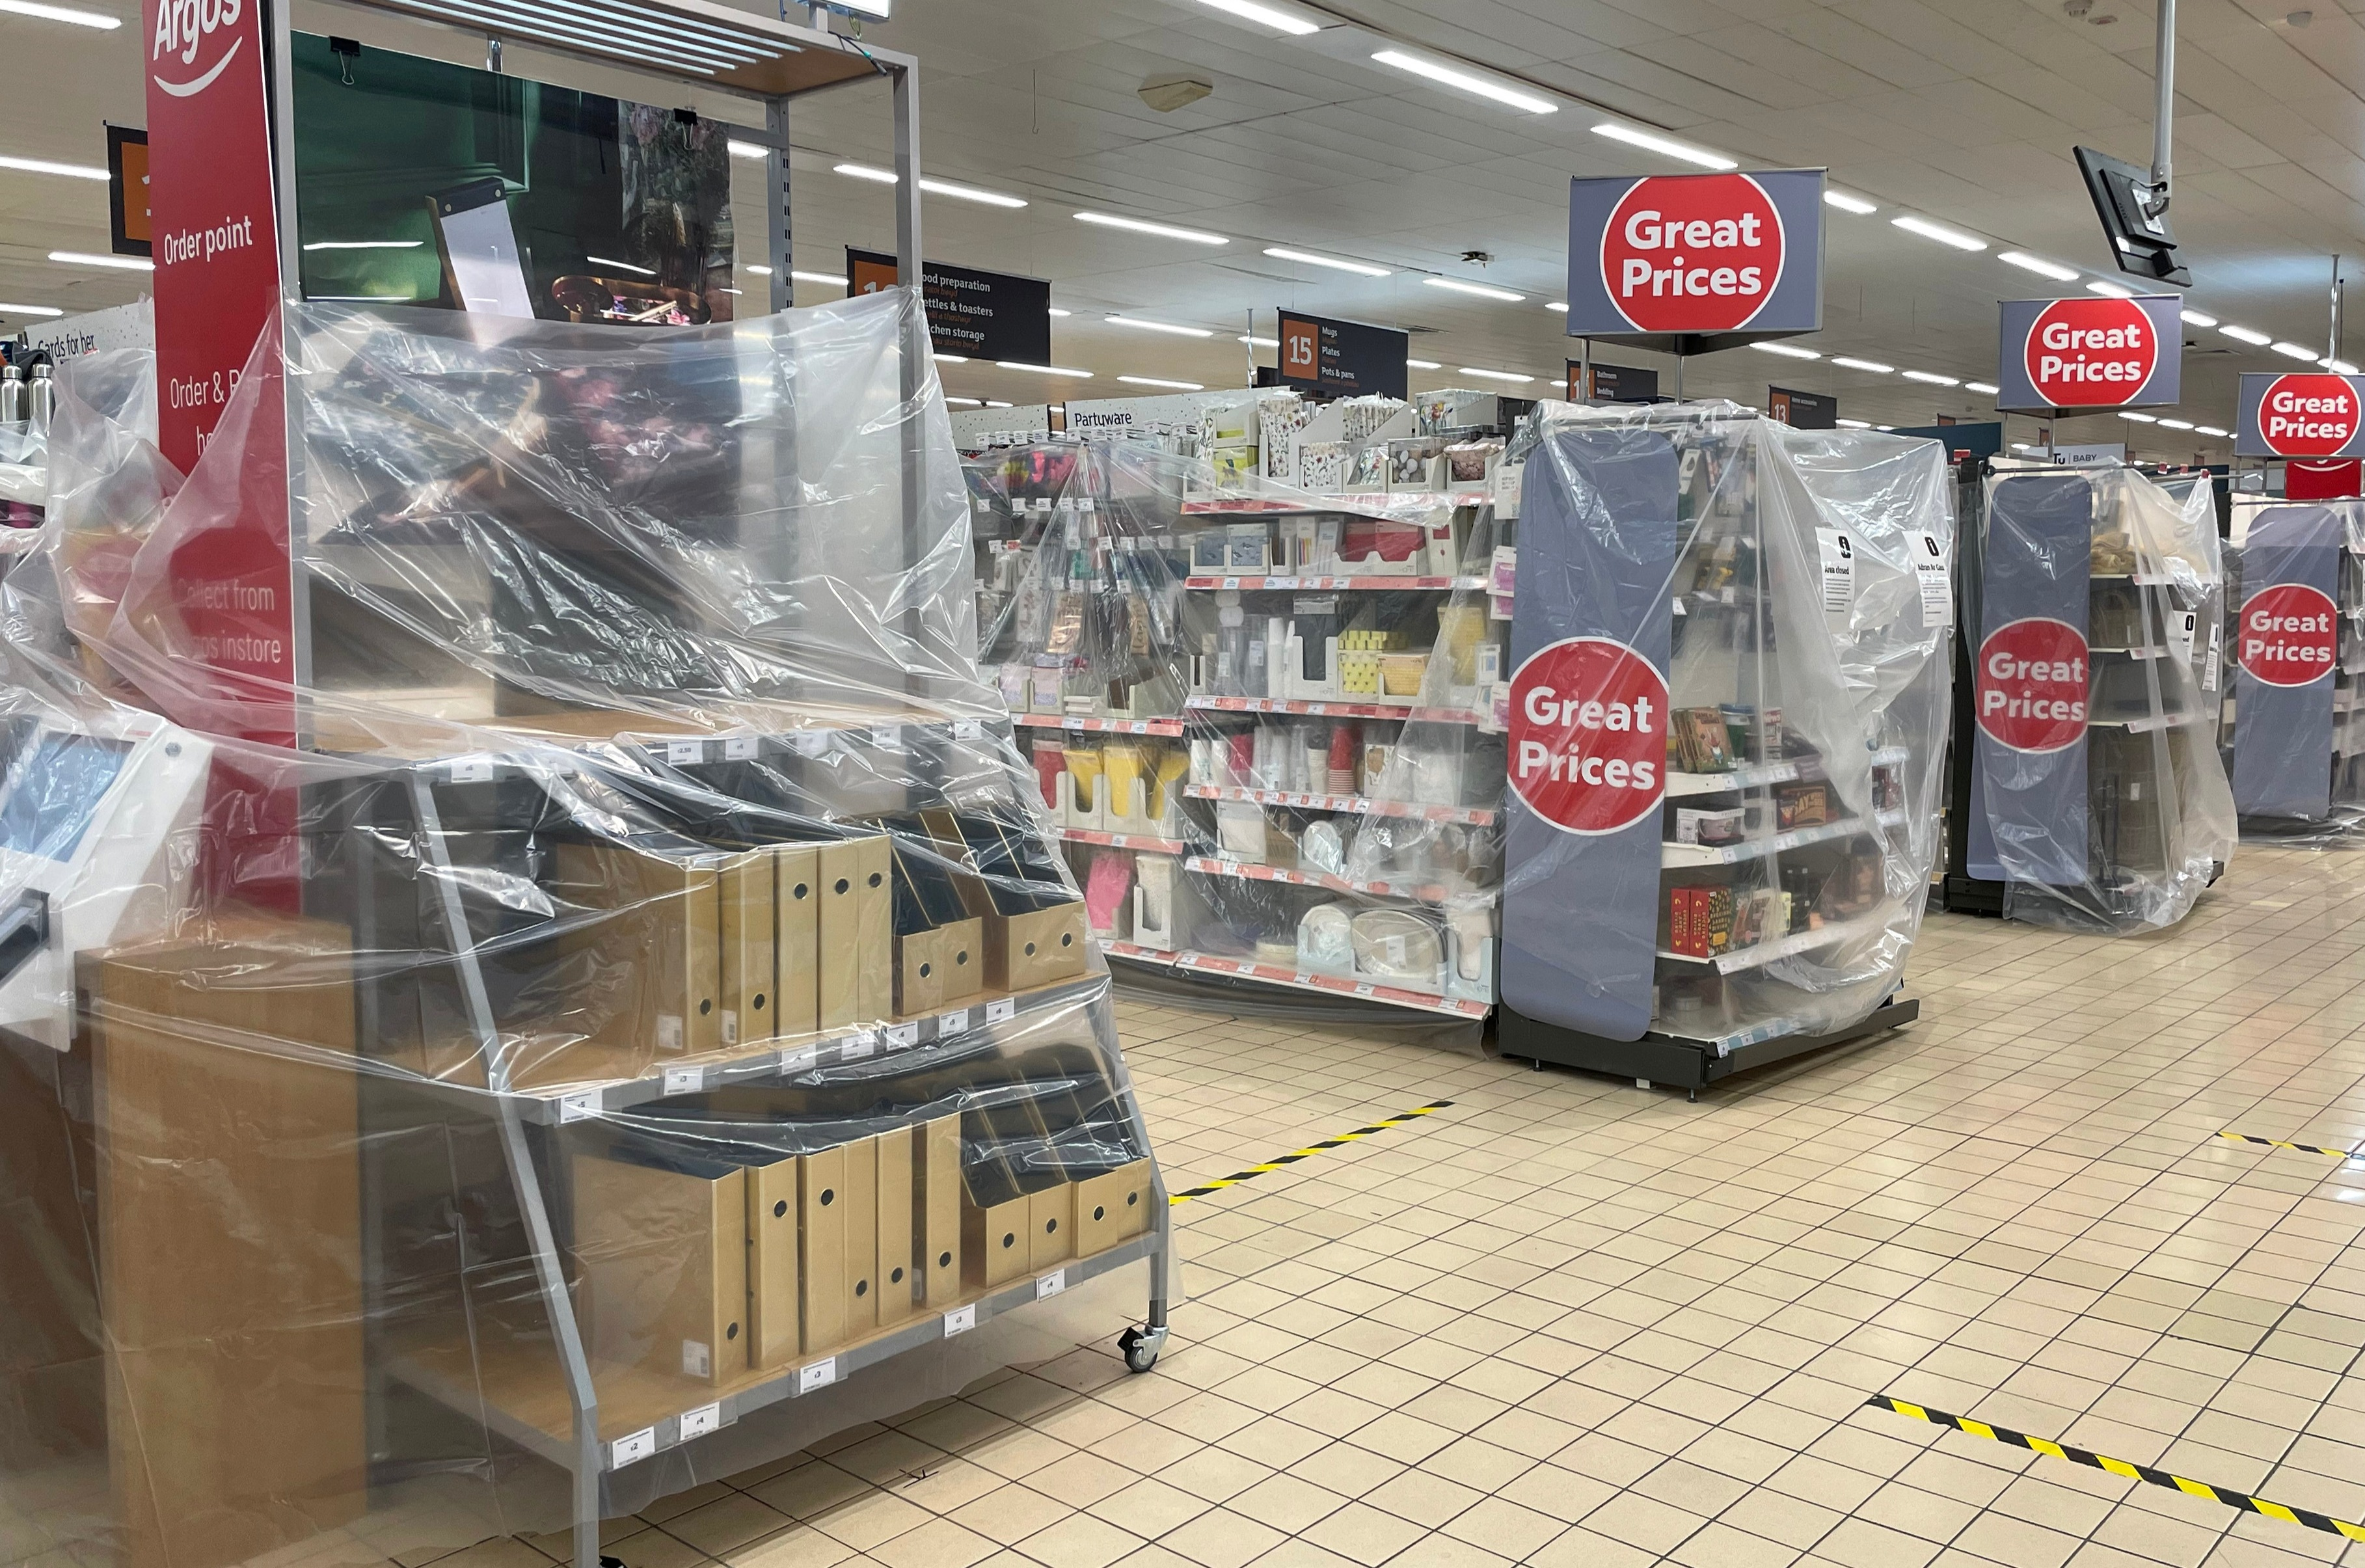 Some aisles in Welsh supermarkets have been blocked off